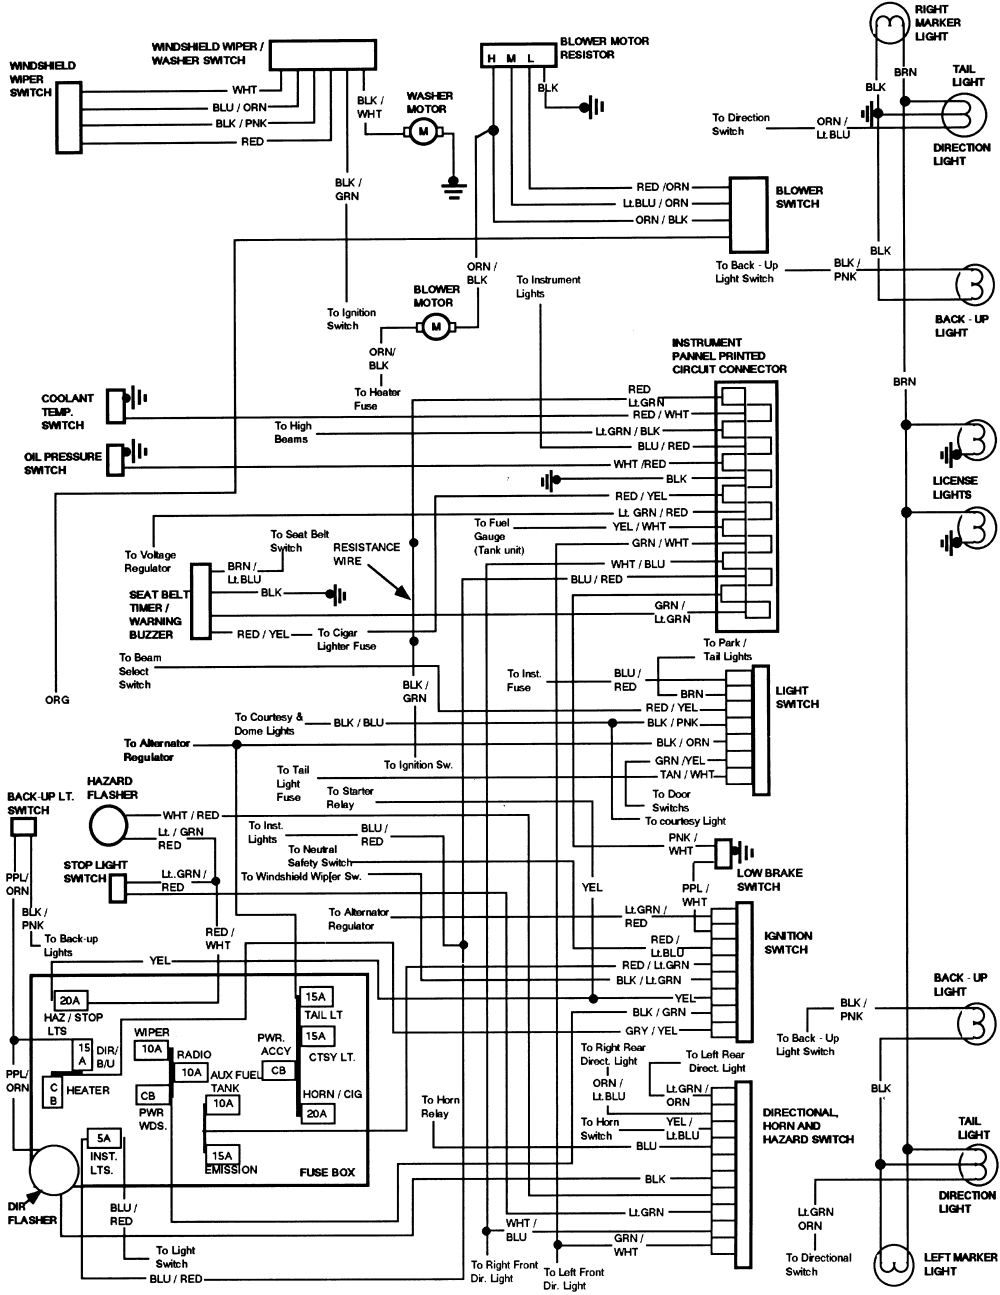 wiring diagram for 1978 ford bronco the wiring diagram 1978 ford bronco wiring diagram nilza wiring diagram